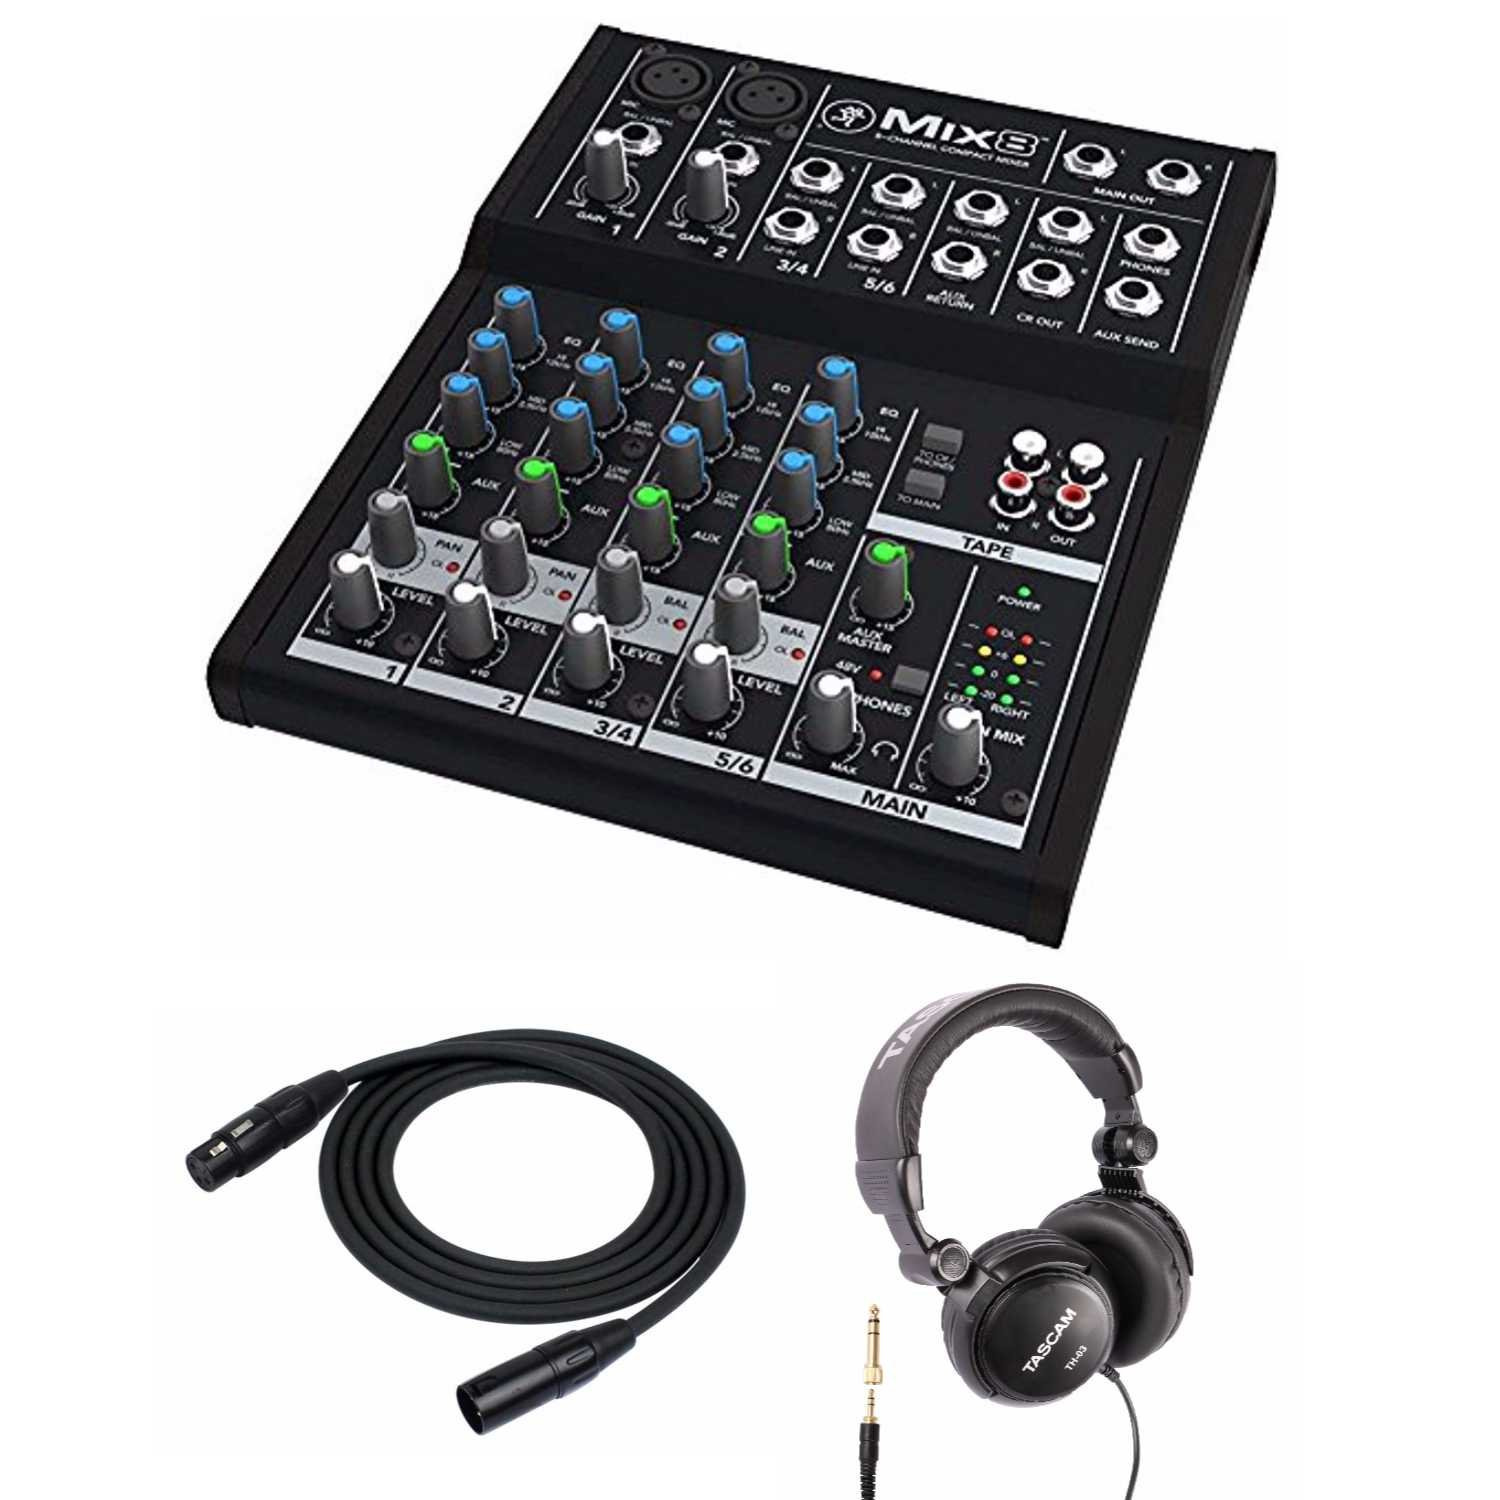 Mackie Mix8 8-channel Compact Mixer with Full Size Studio Headphones and XLR Cable by Mackie